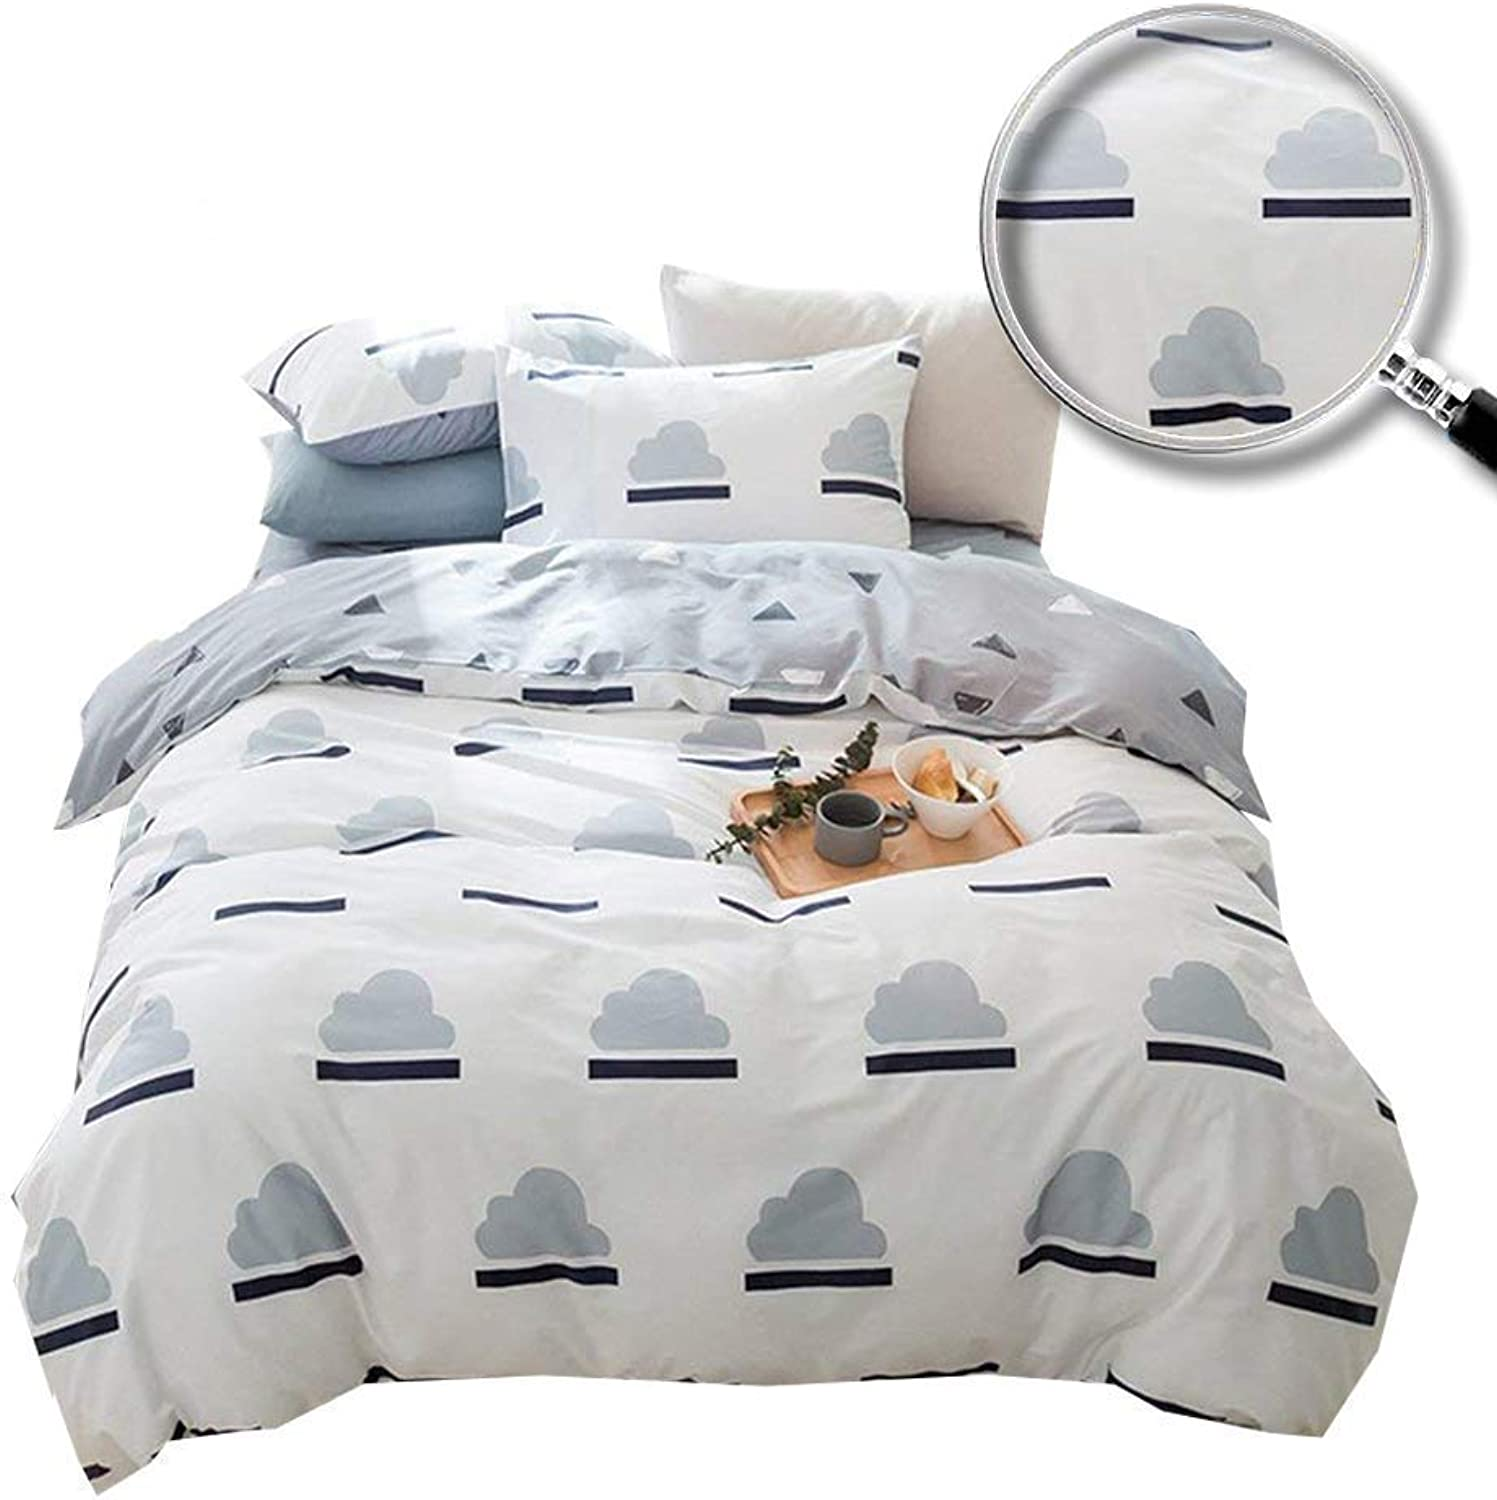 XUKEJU Reversible 3 Pieces Duvet Cover The Clouds Patterns Printed Bedding Set 100% Cotton Quilt Cover Queen Full Size for Boys Girls Adults